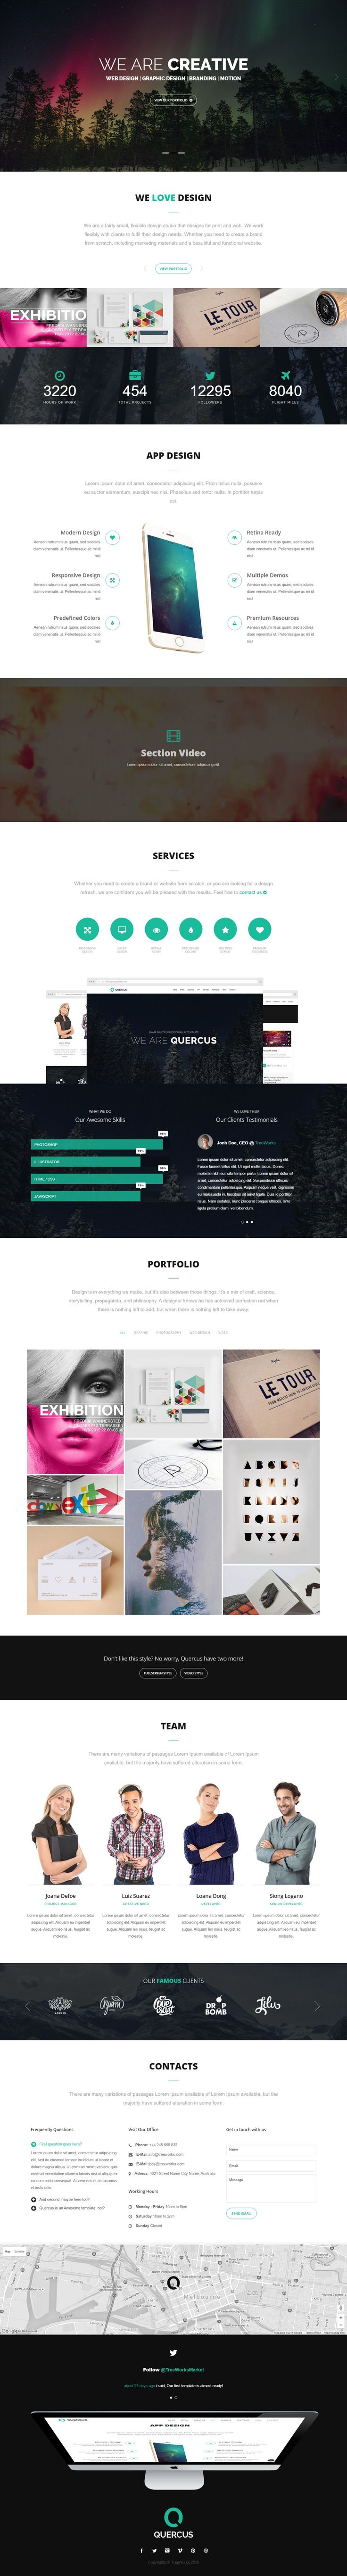 Quercus is Wonderful Responsive HTML Template for Multipurpose Website Download Now ! #HTML5 #HTMLTemplate